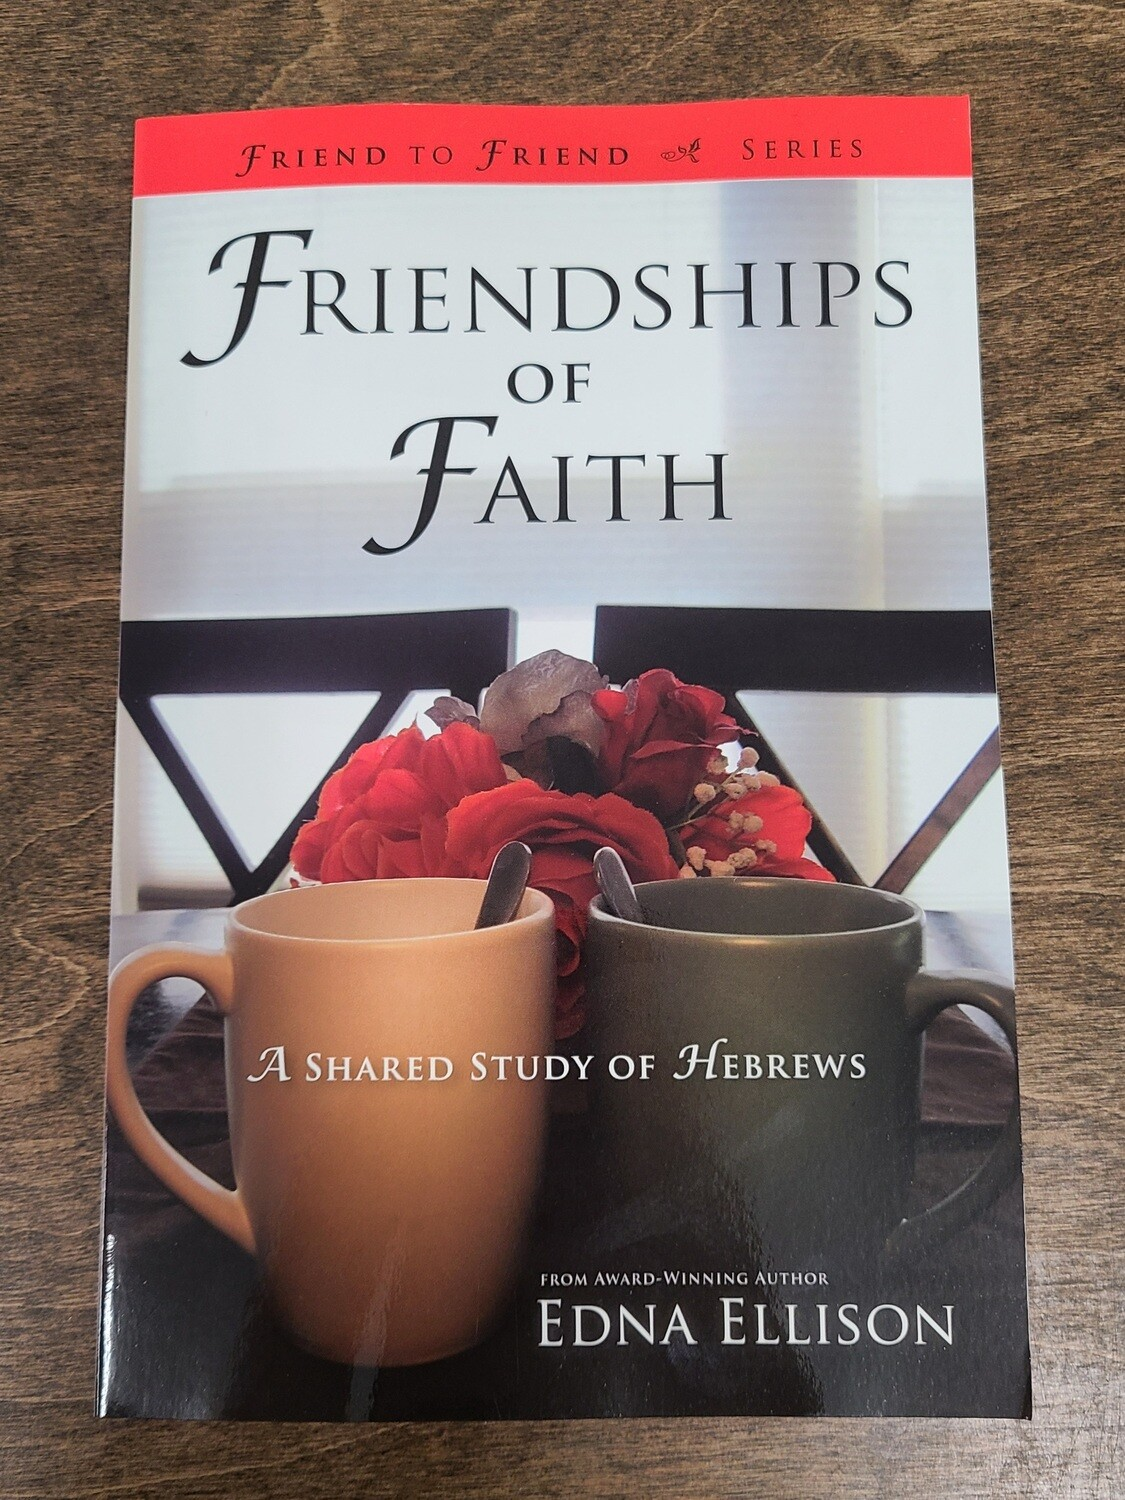 Friendships of Faith: A Shared Study of Hebrews by Edna Ellison